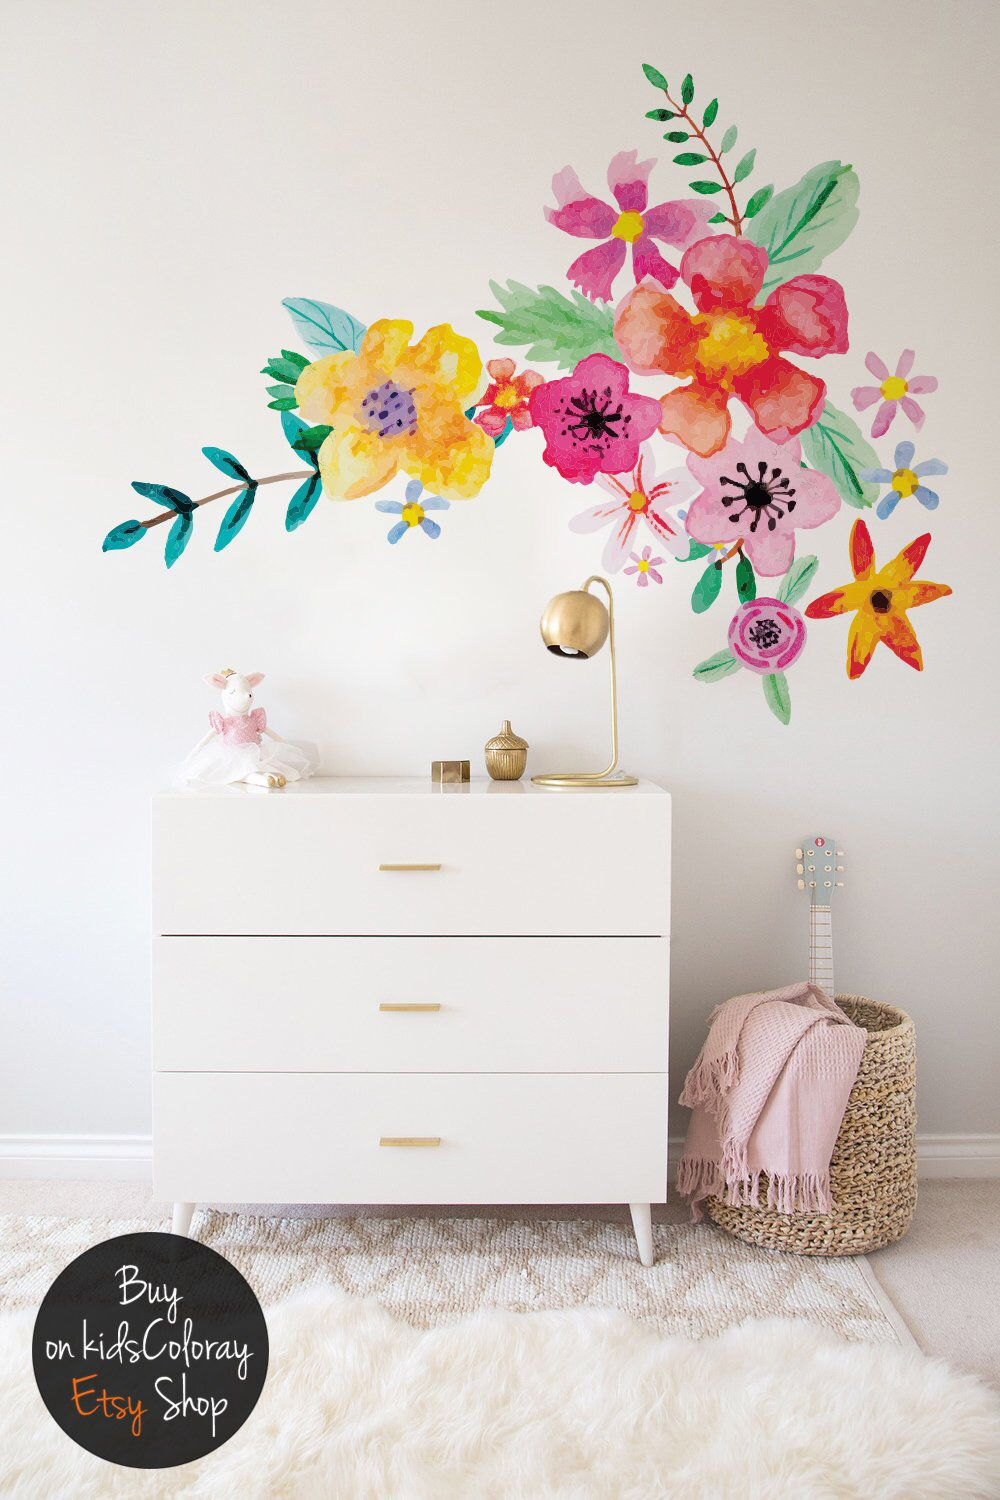 Florists Dream Vinyl Set Watercolor Wall Stickers Life Size